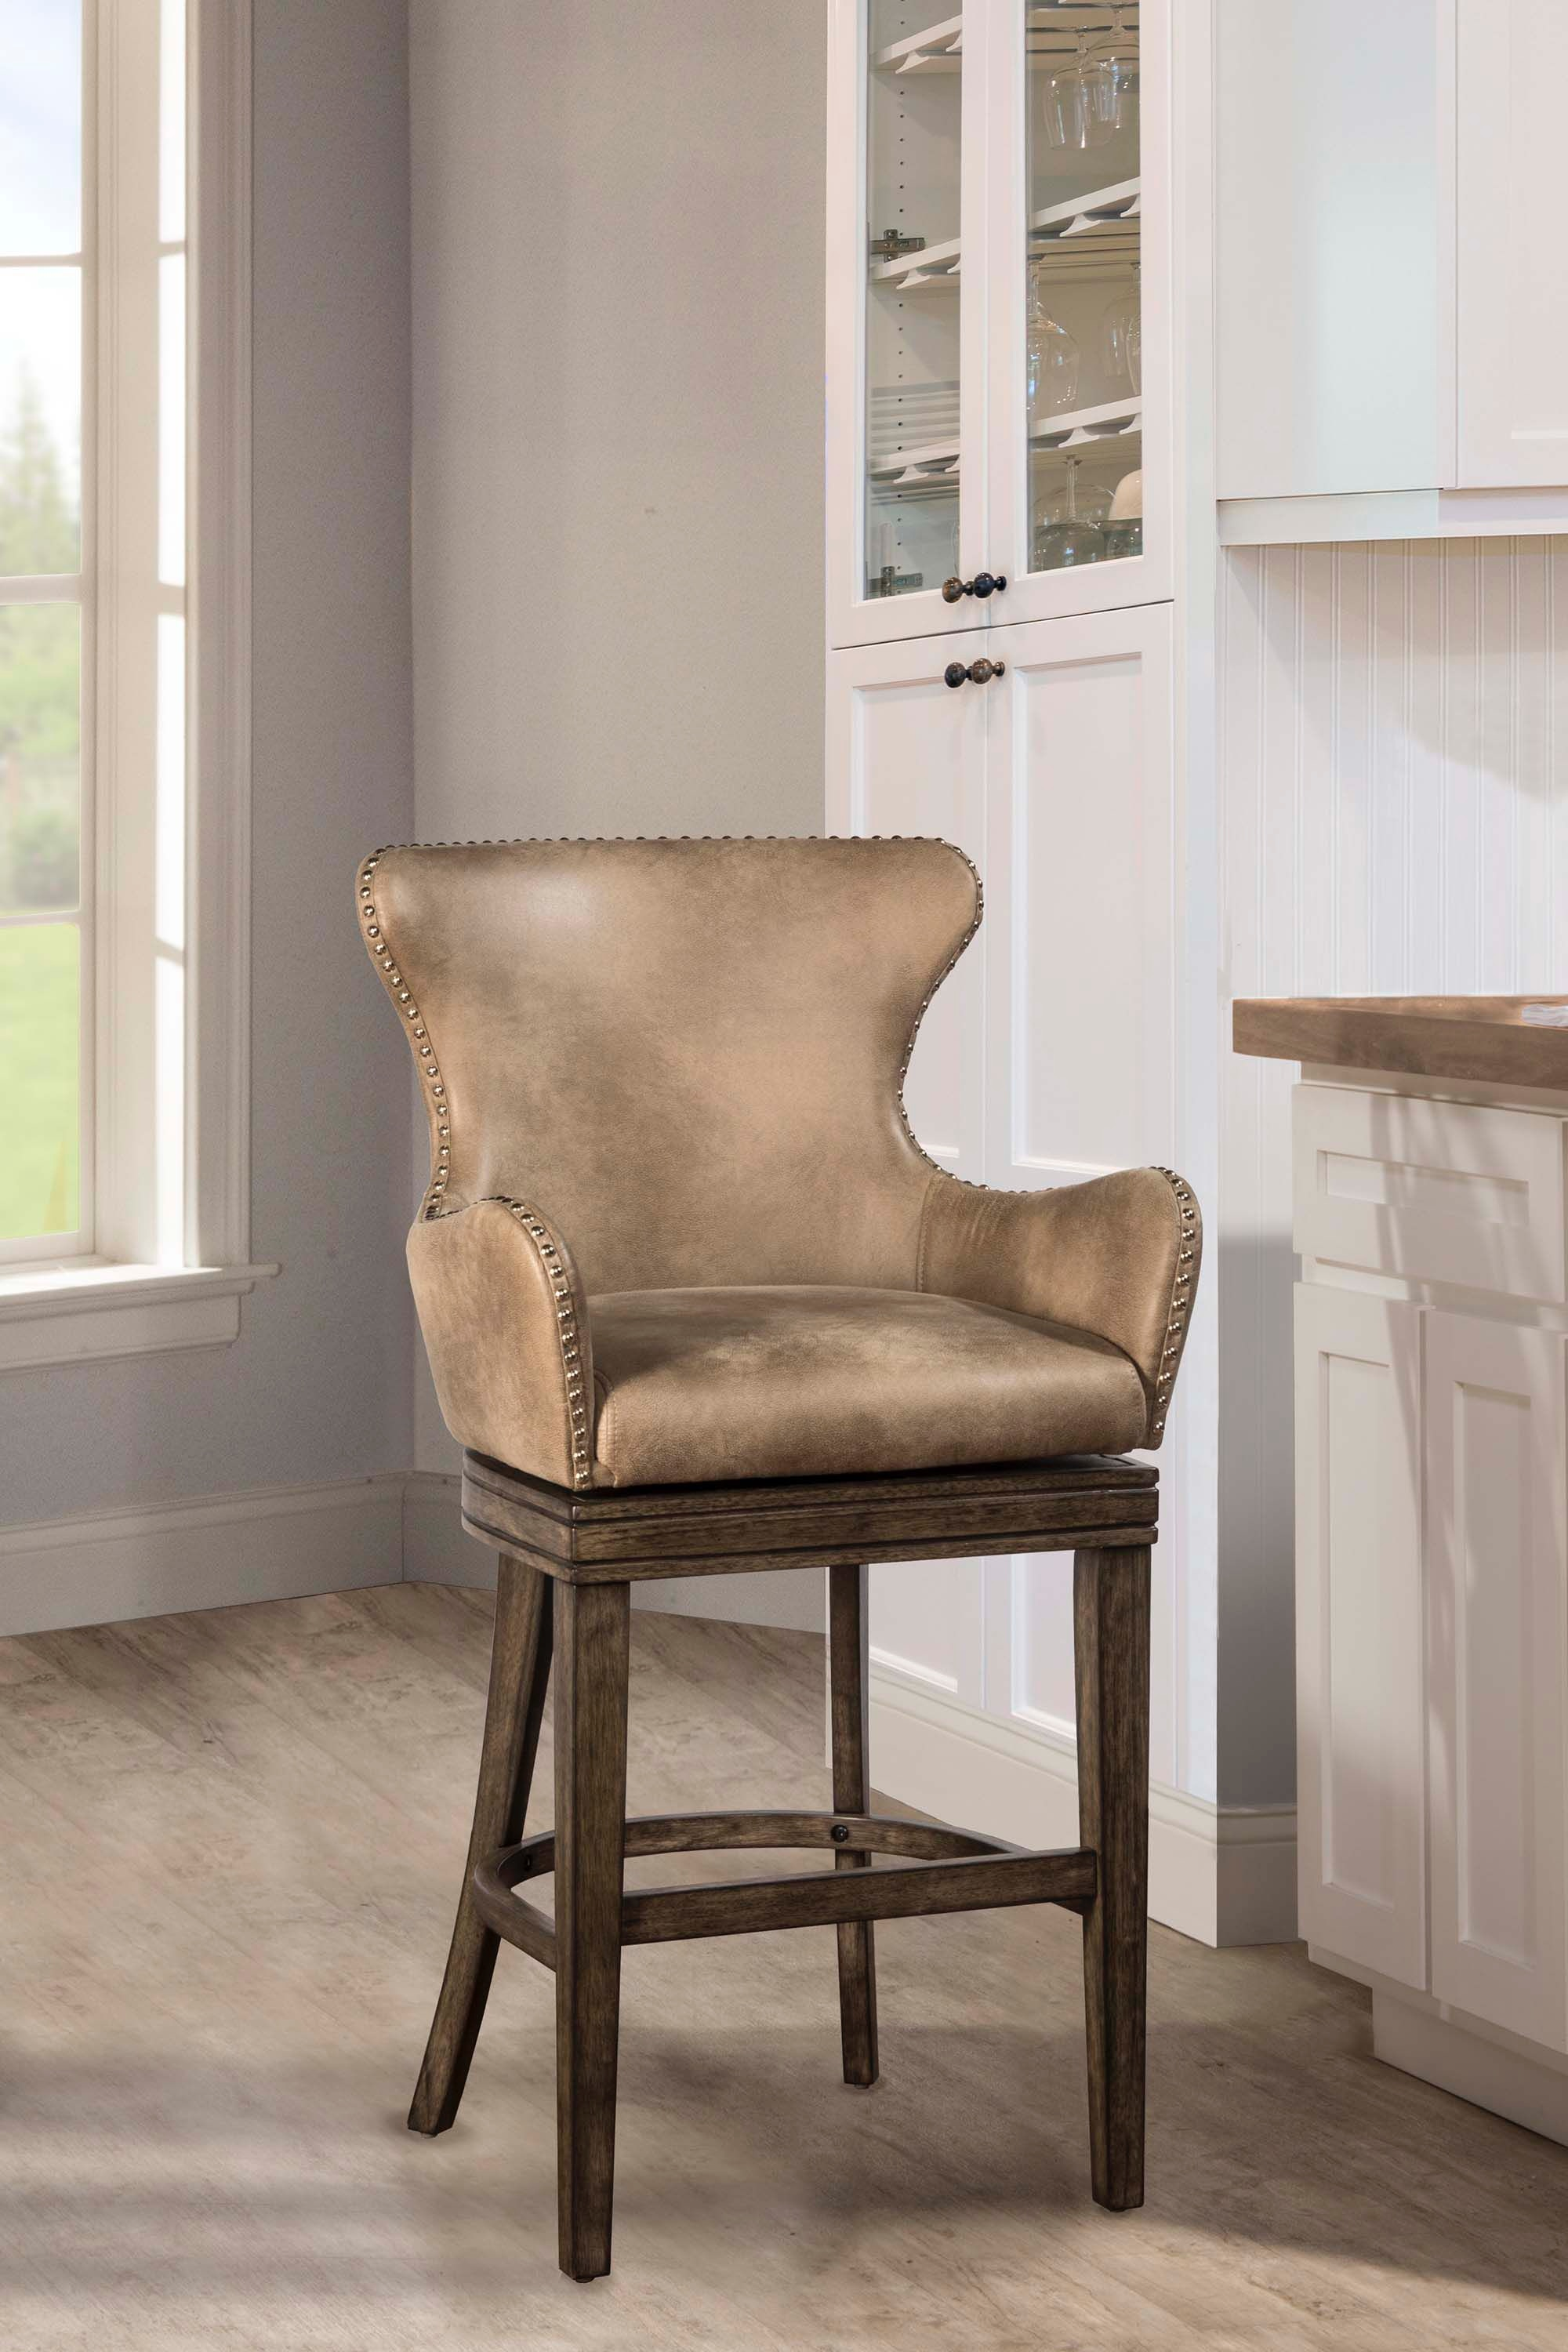 Dining Room Stools Outer Banks Furniture Nags Head And